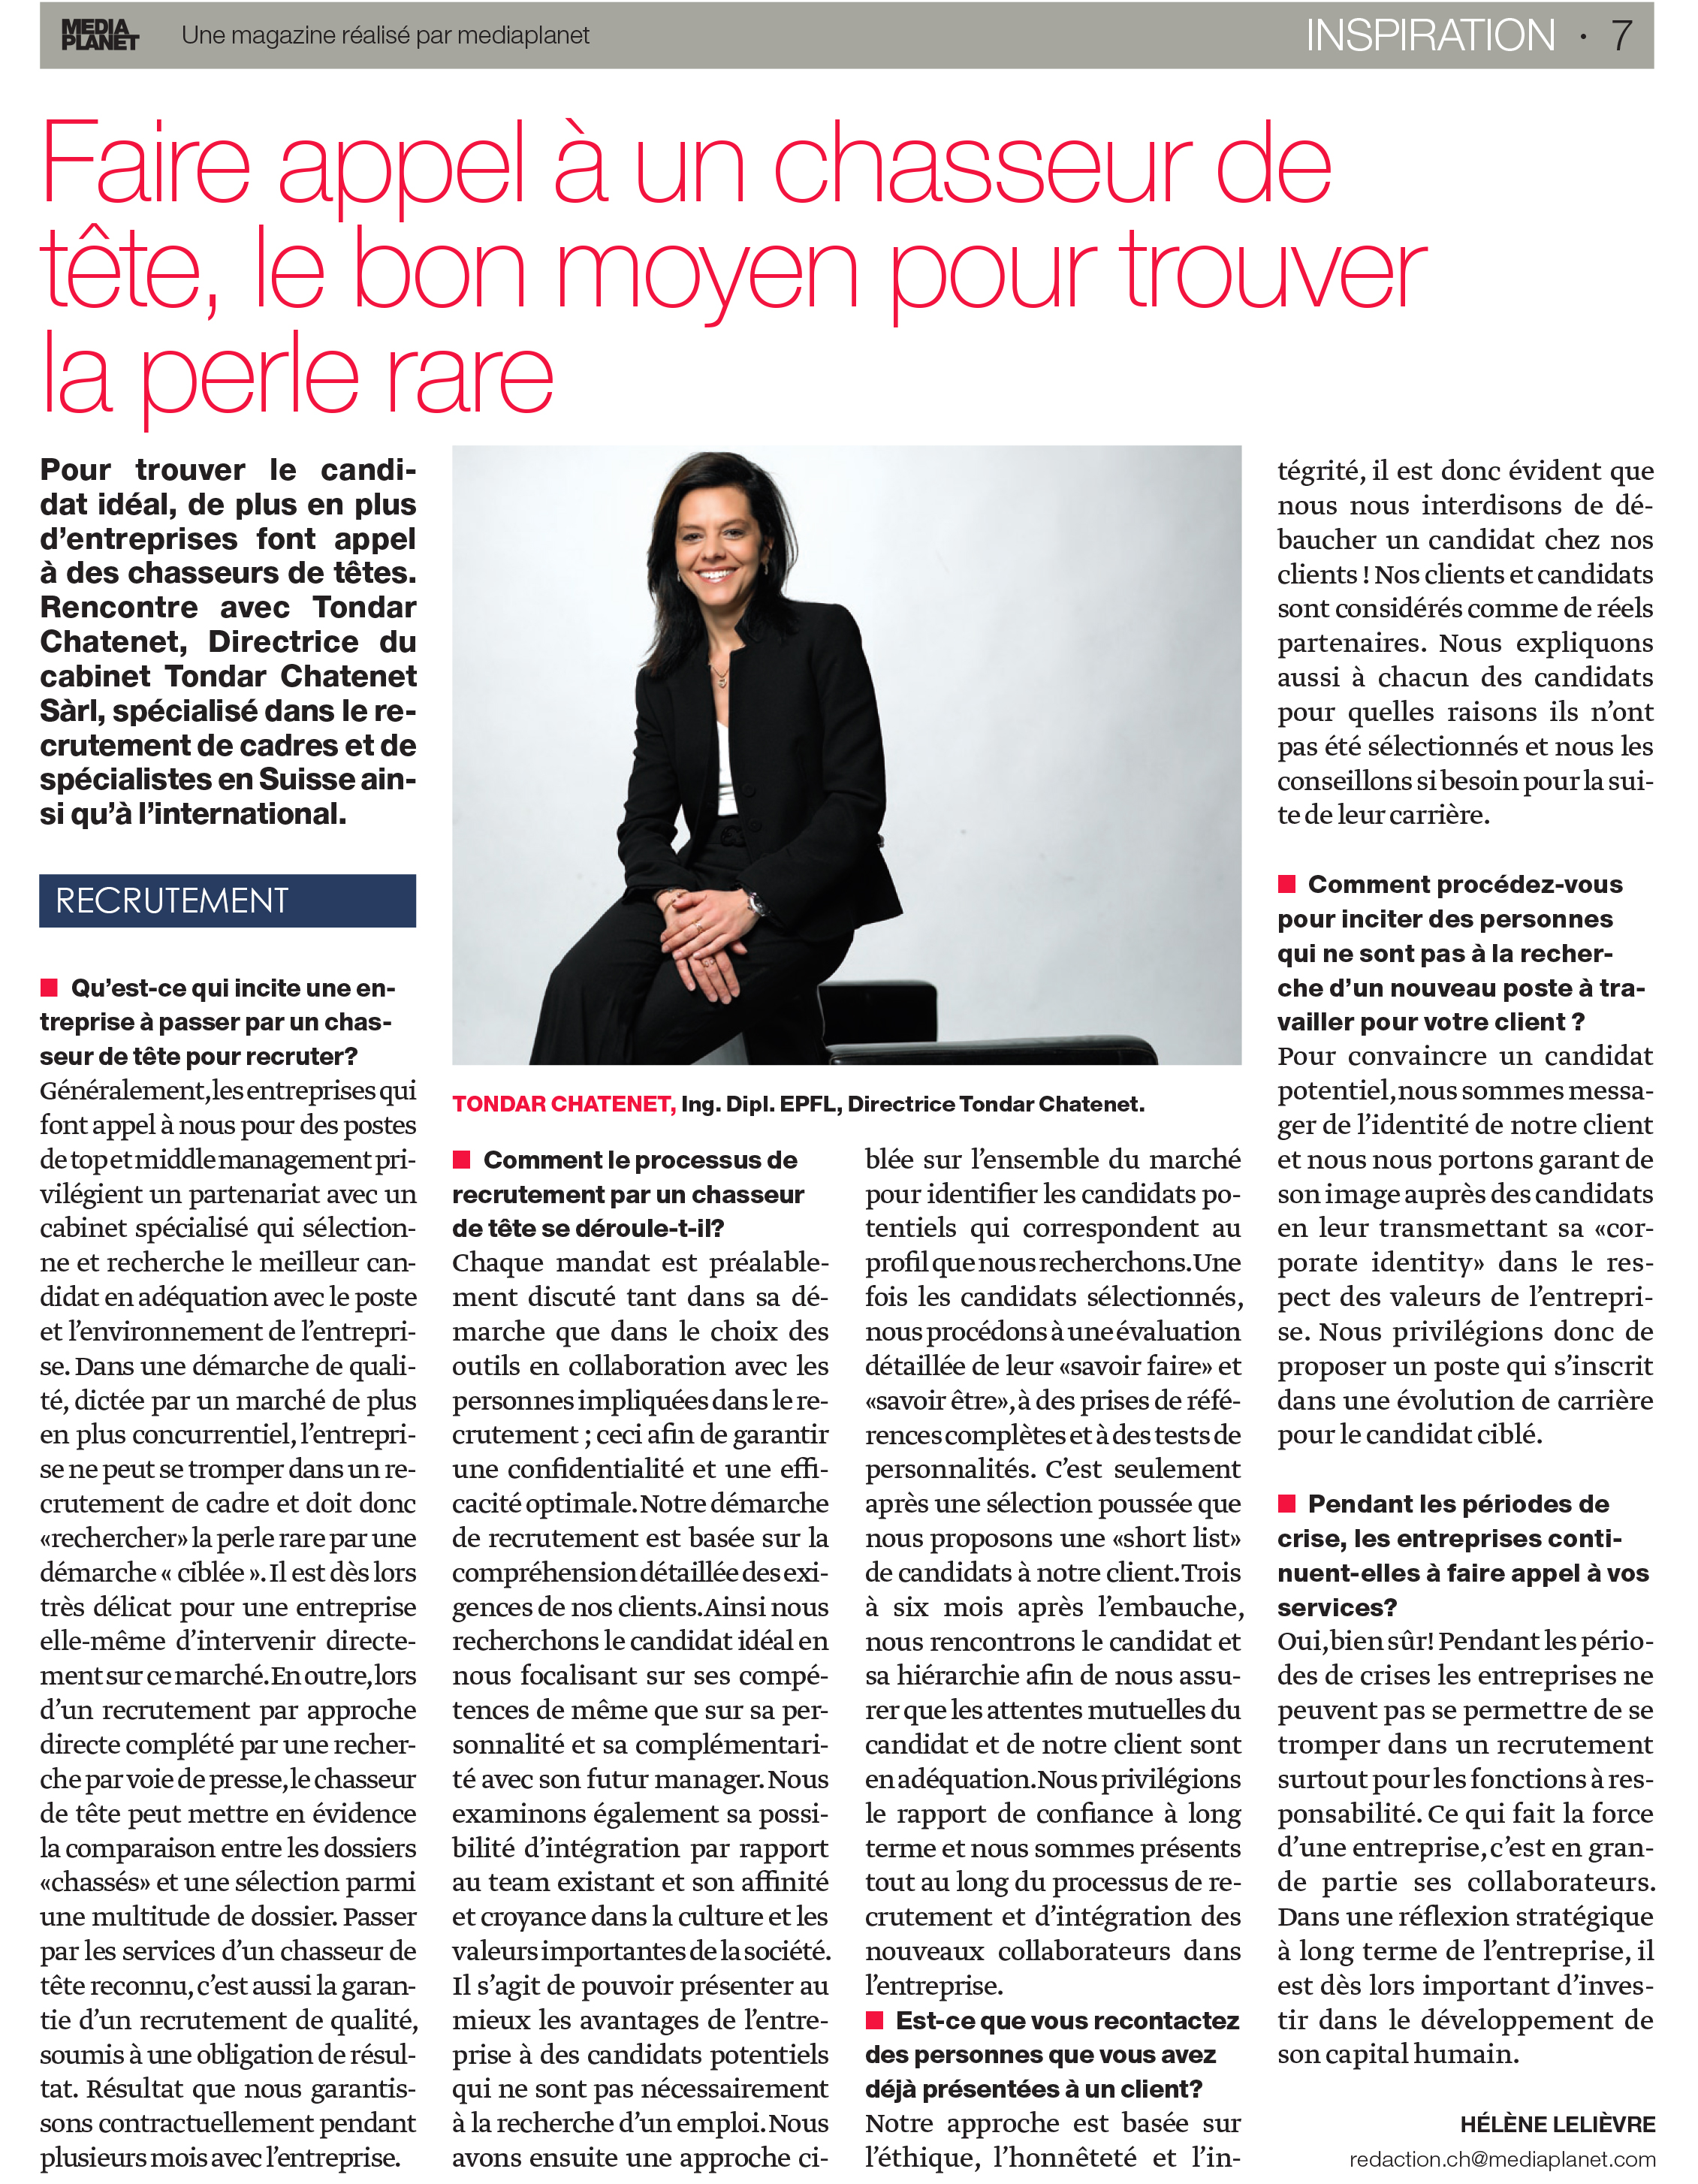 article-presse_media-planet